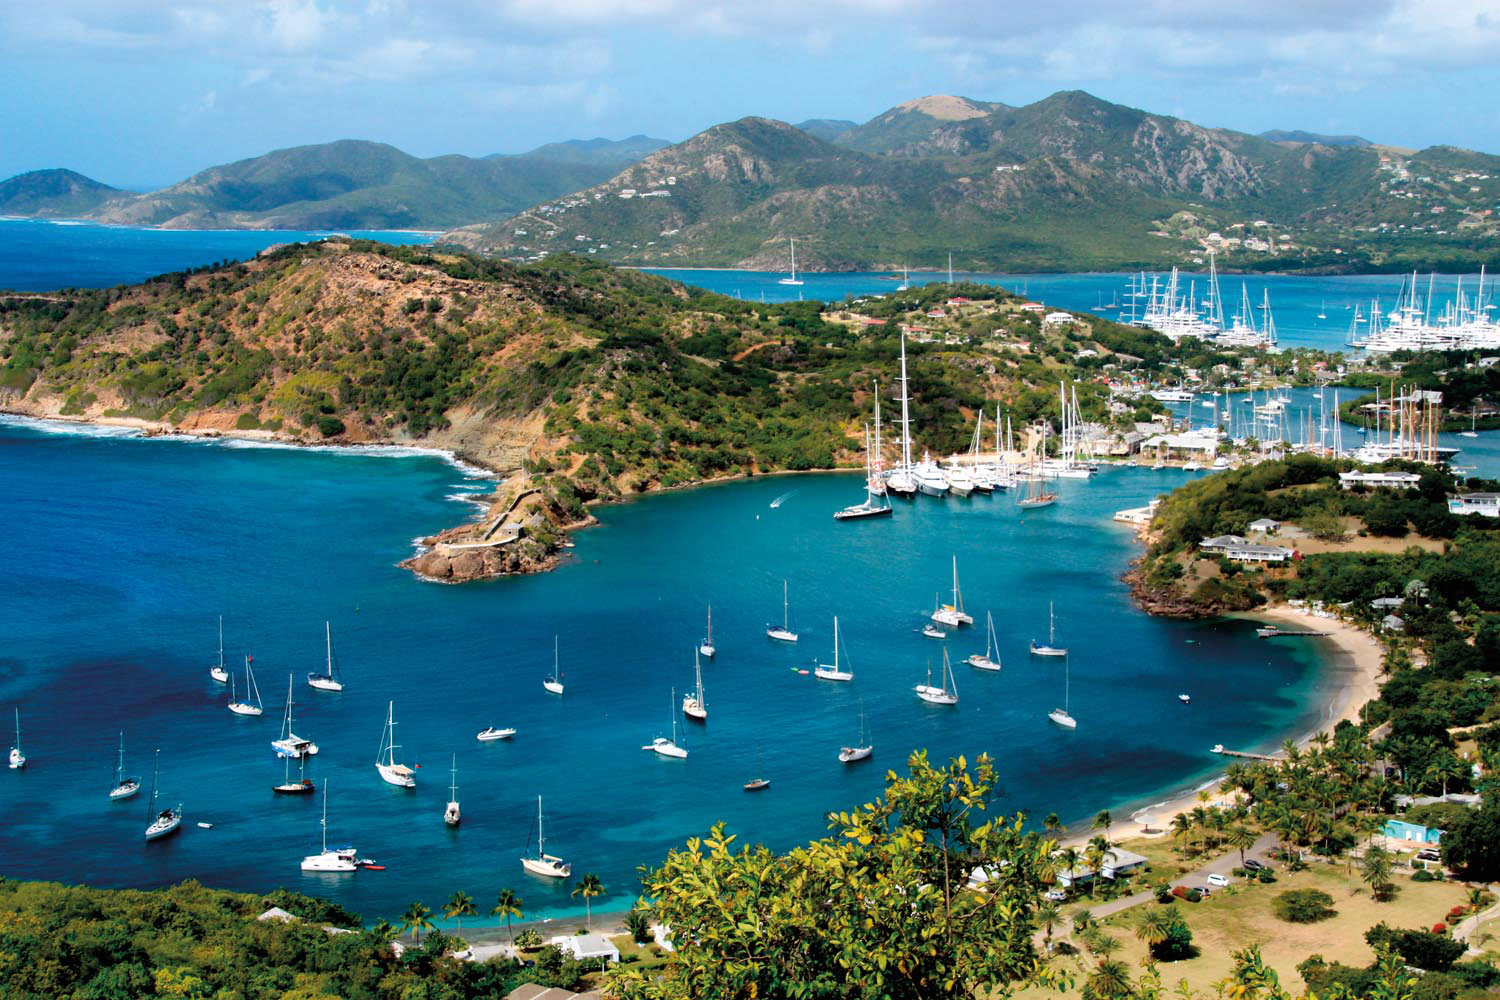 The view of Nelson's Dockyard from Shirley Heights, Antigua. Photo by Quiggyt4/Shutterstock.com